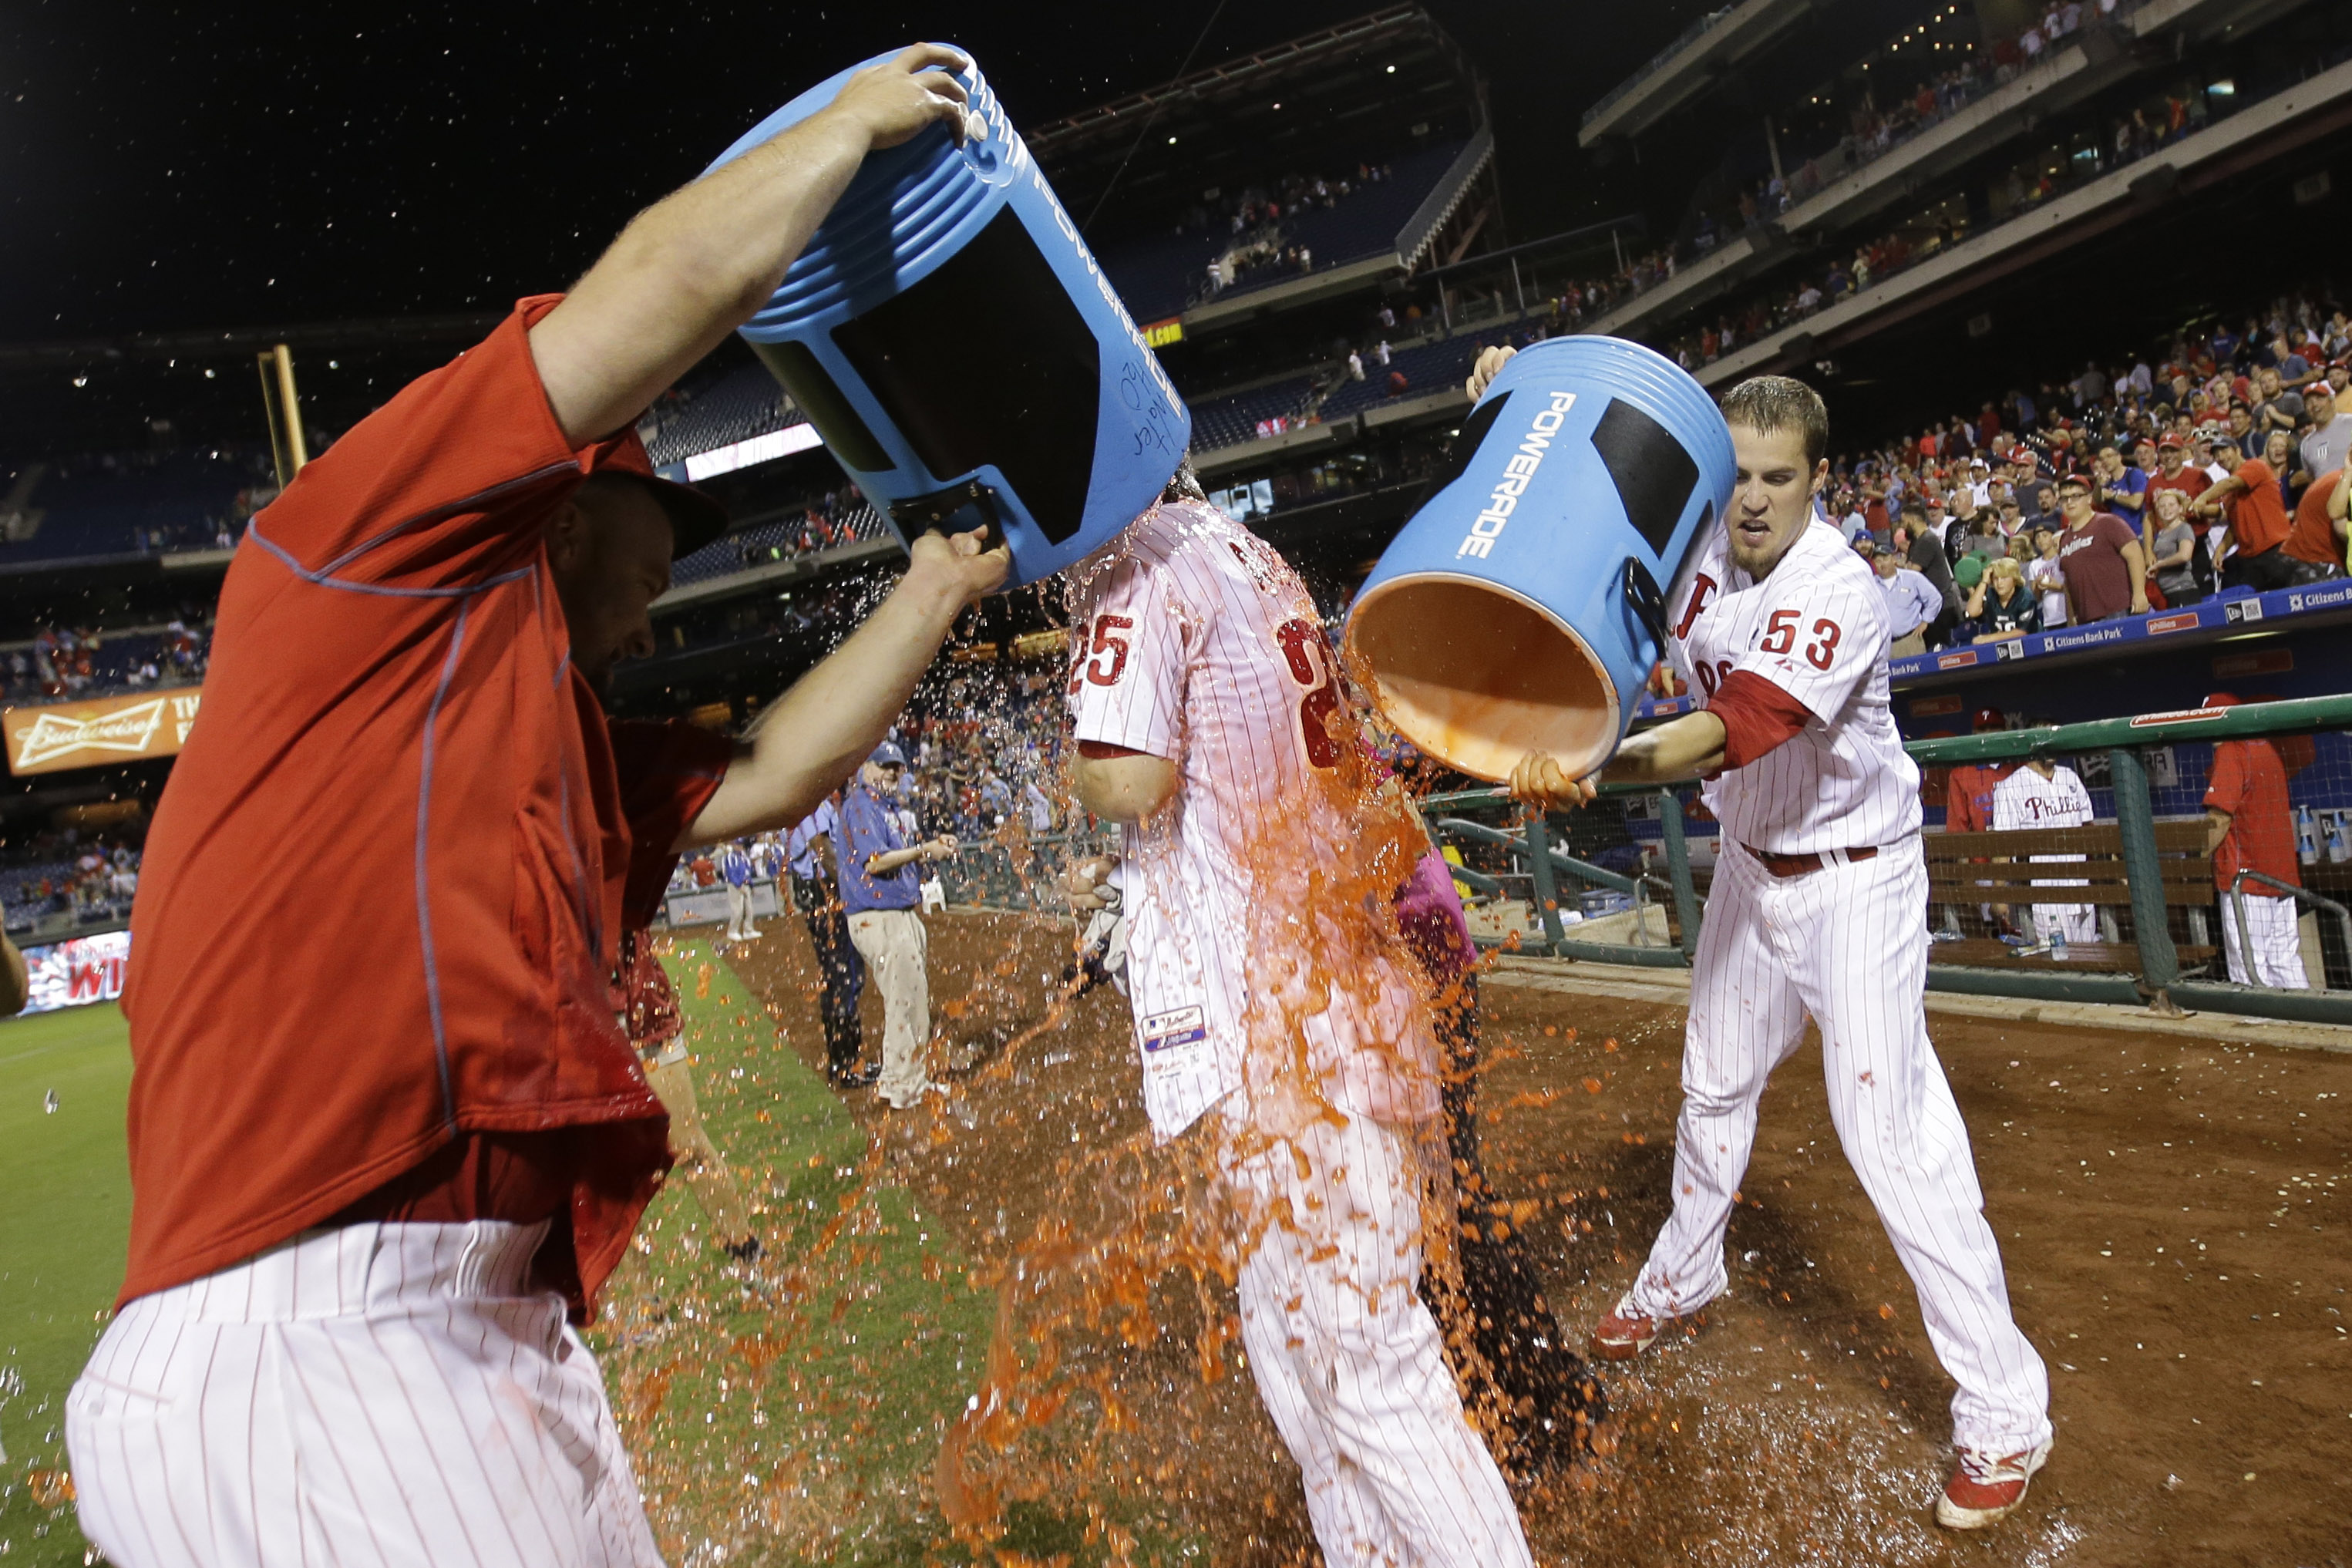 CORRECTS SPELLING OF NAME TO ASCHE NOT ASHE IN SECOND REFERENCE Philadelphia Phillies' Cody Asche, center, is doused by Ken Giles, right, and Cameron Rupp  after Asche hit a walk-off two-run home run off Chicago Cubs relief pitcher Hector Rondon during th